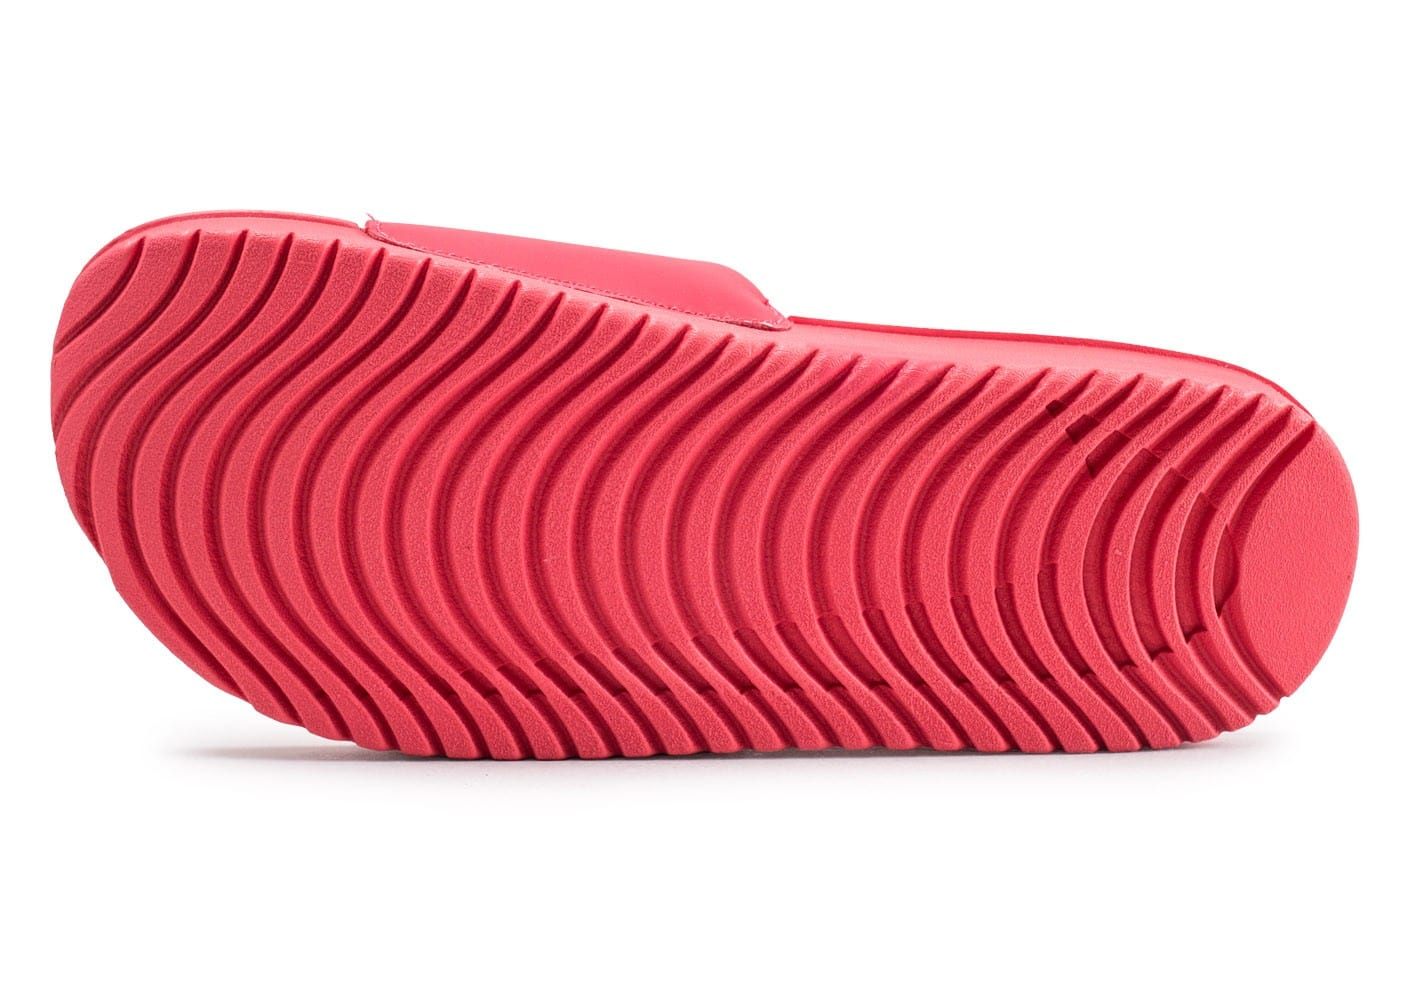 best sneakers 4fc0a 80a77 ... Chaussures Nike Kawa Slide 2 junior rose vue avant ...